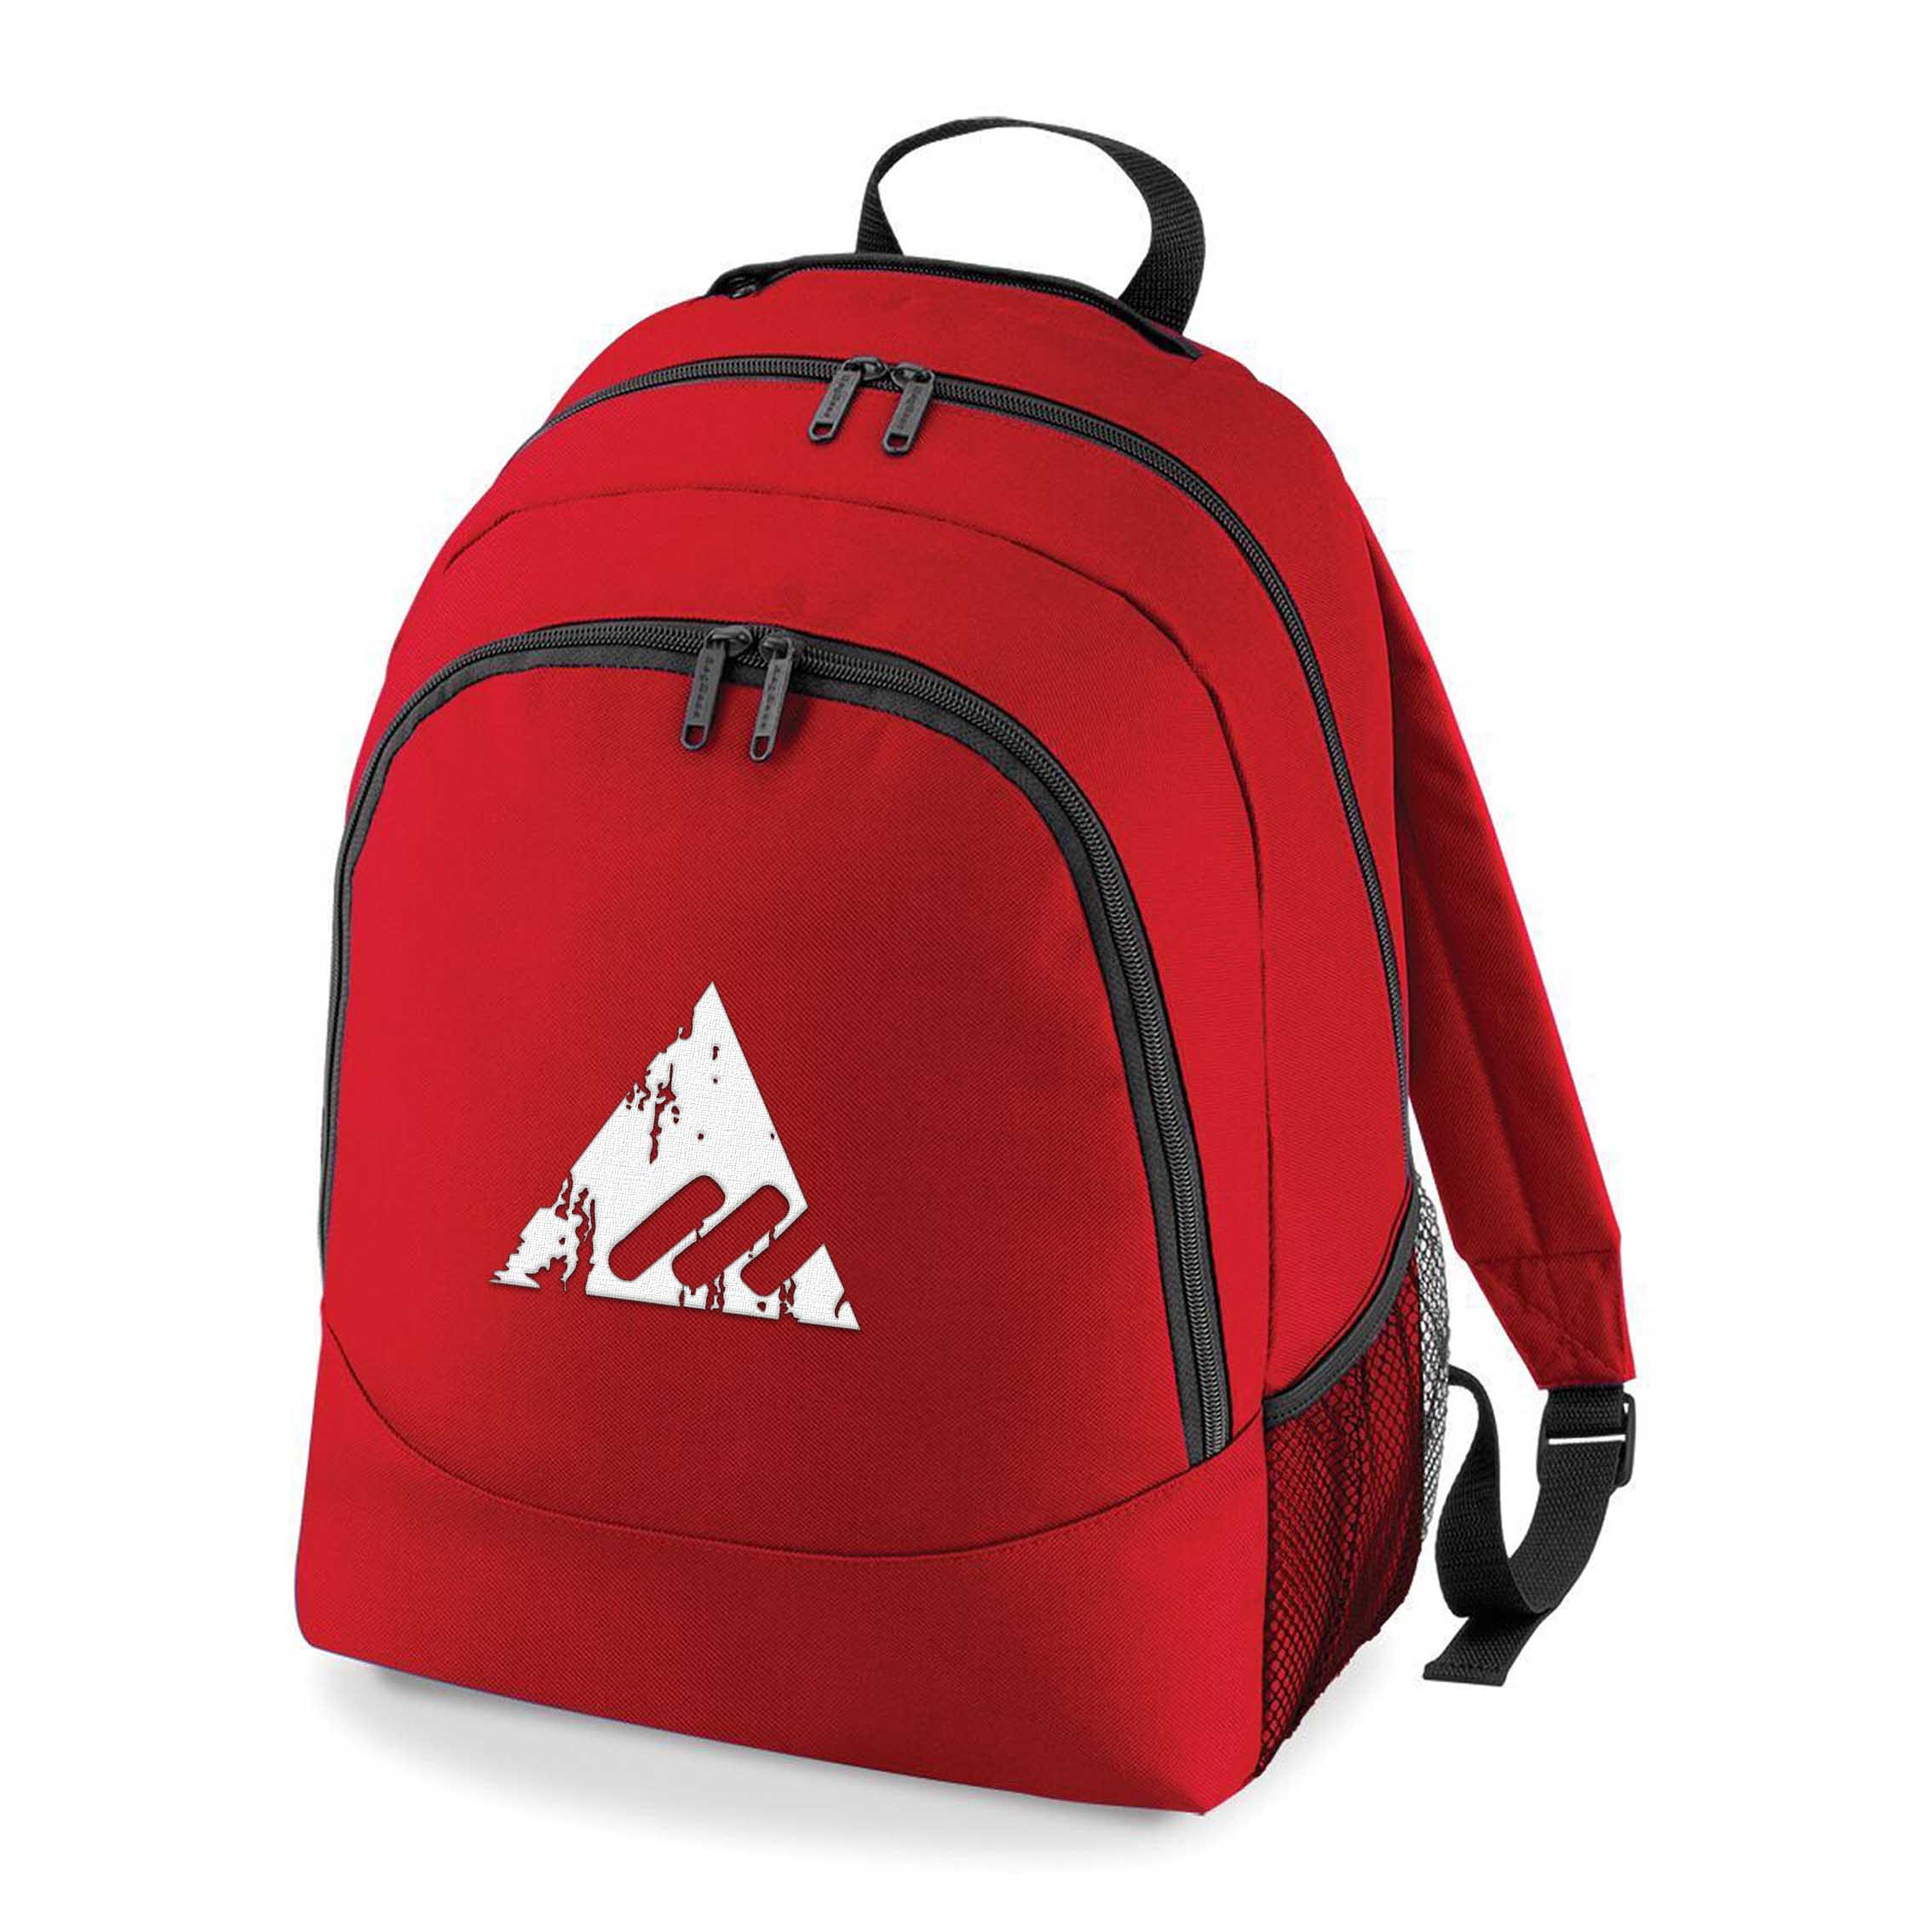 Destiny New Monarchy Rucksack Bag